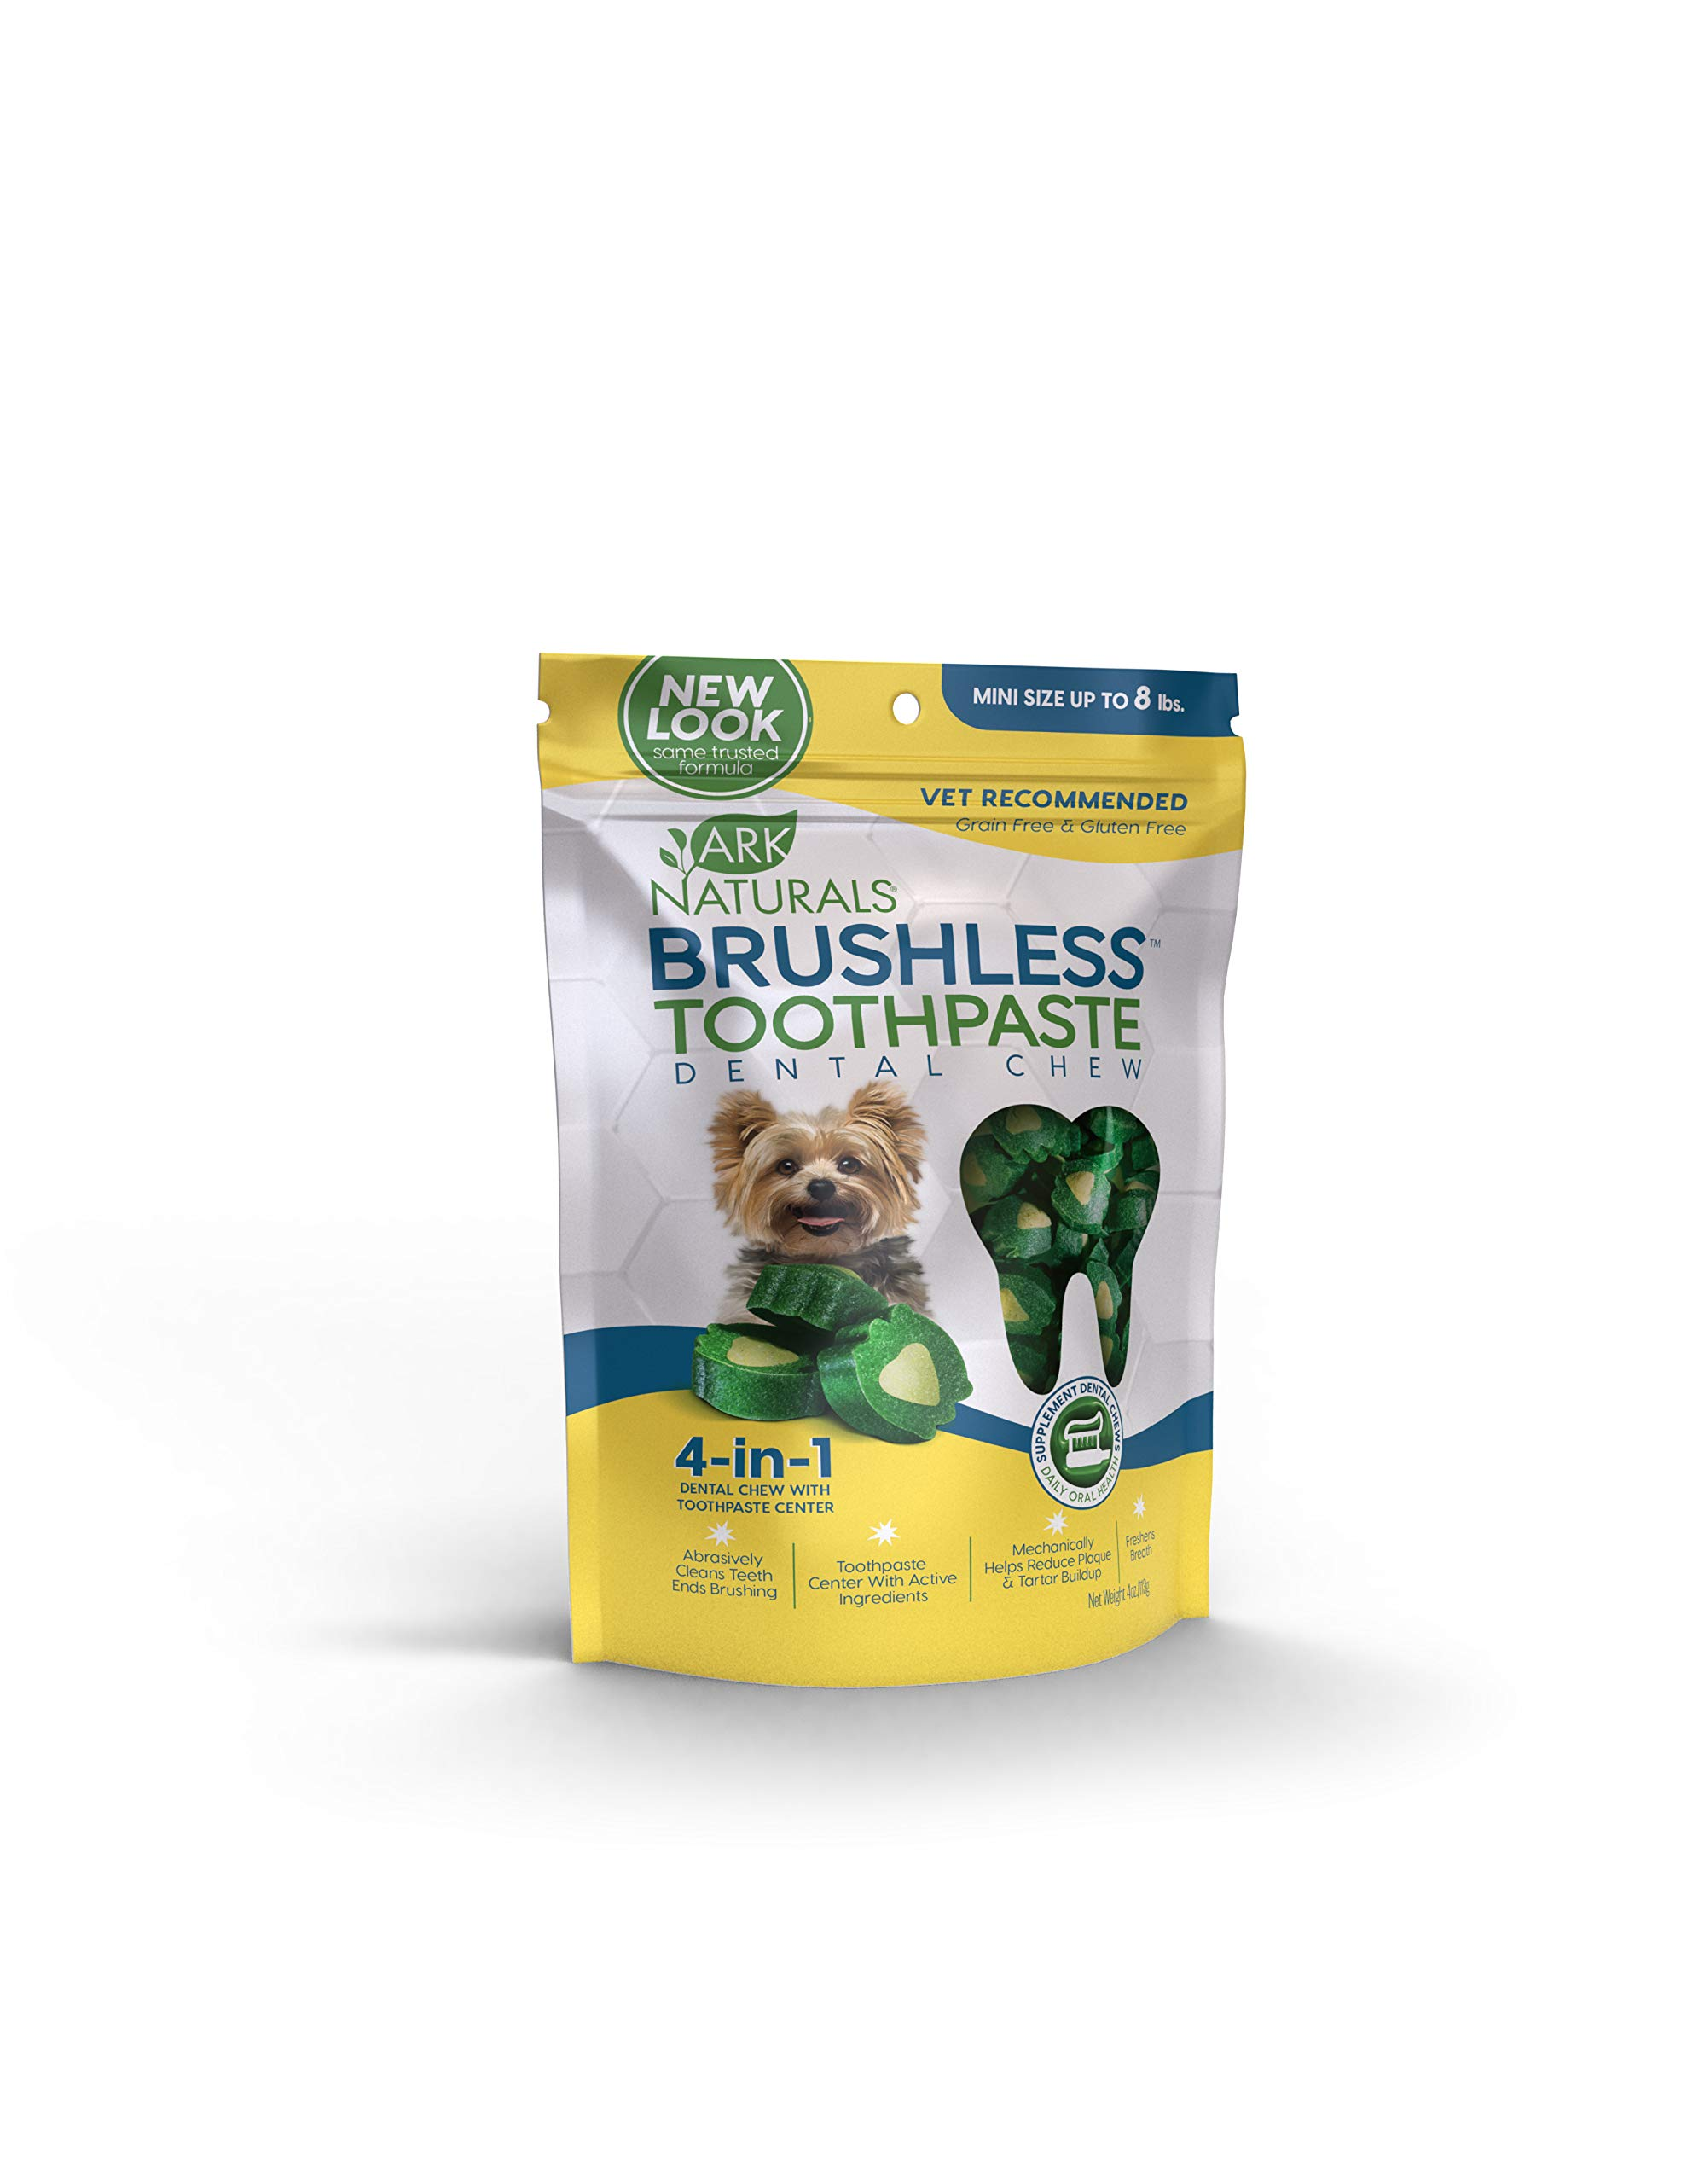 Ark-Naturals-Brushless-Toothpaste-Vet-Recommended-Natural-Dental-Chews-for-Dogs-Plaque-Tartar-and-Bacteria-Control